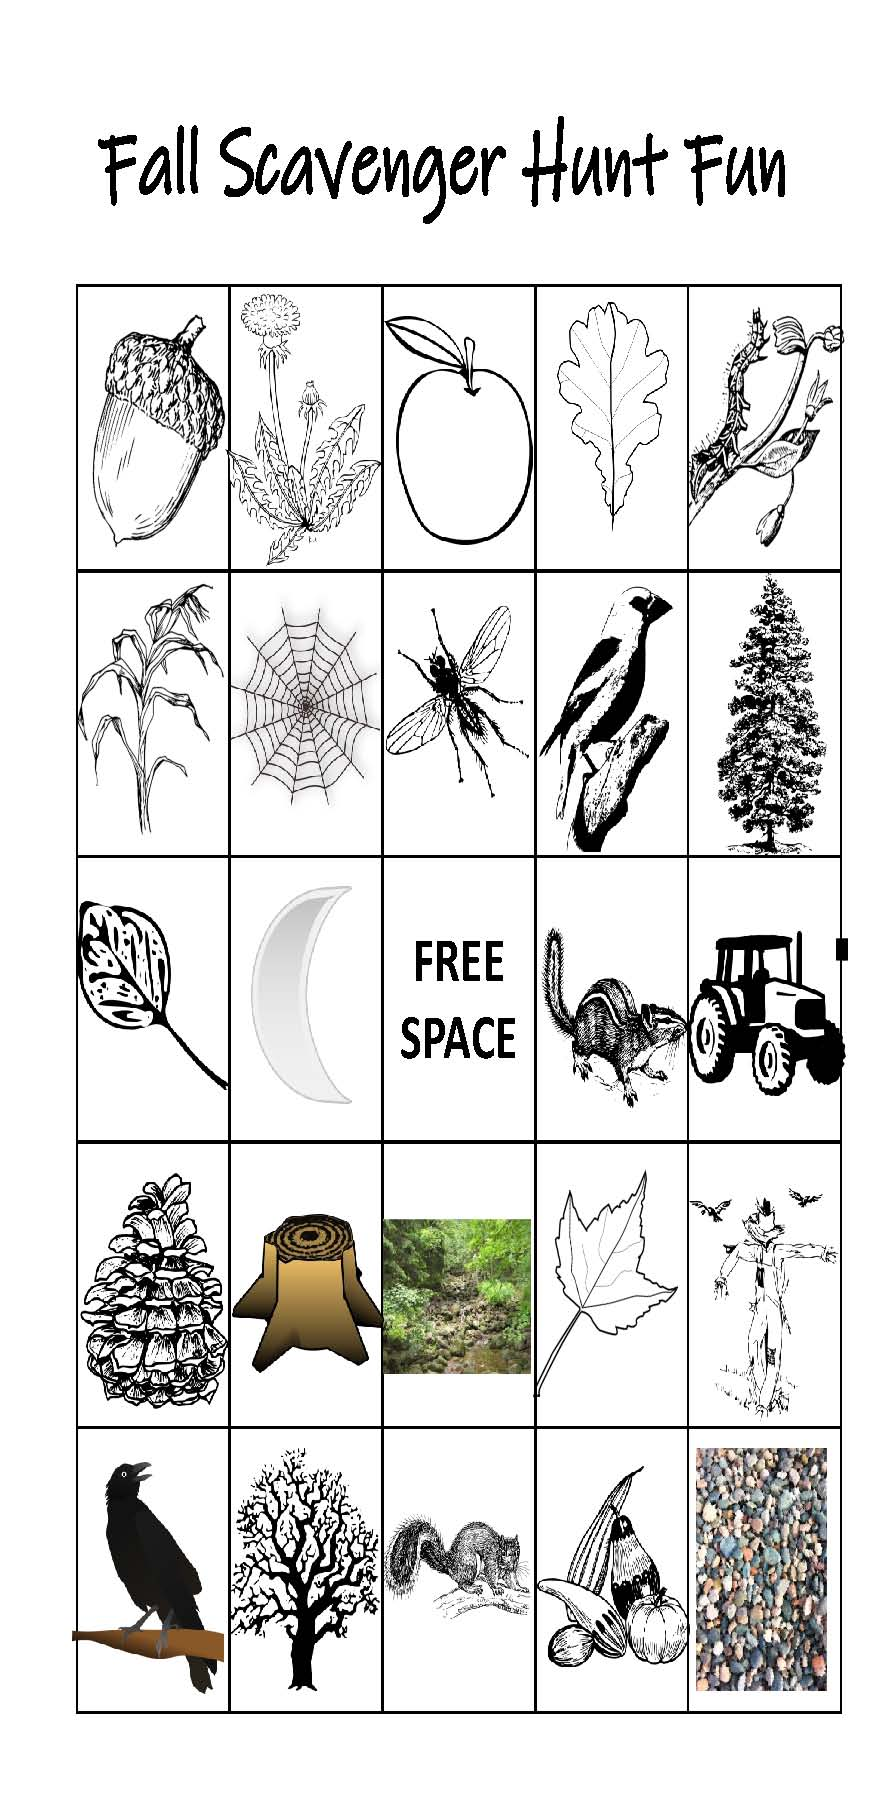 image about Fall Scavenger Hunt Printable identify Drop Scavenger Hunt Printable by means of Katies Homeschool Cottage